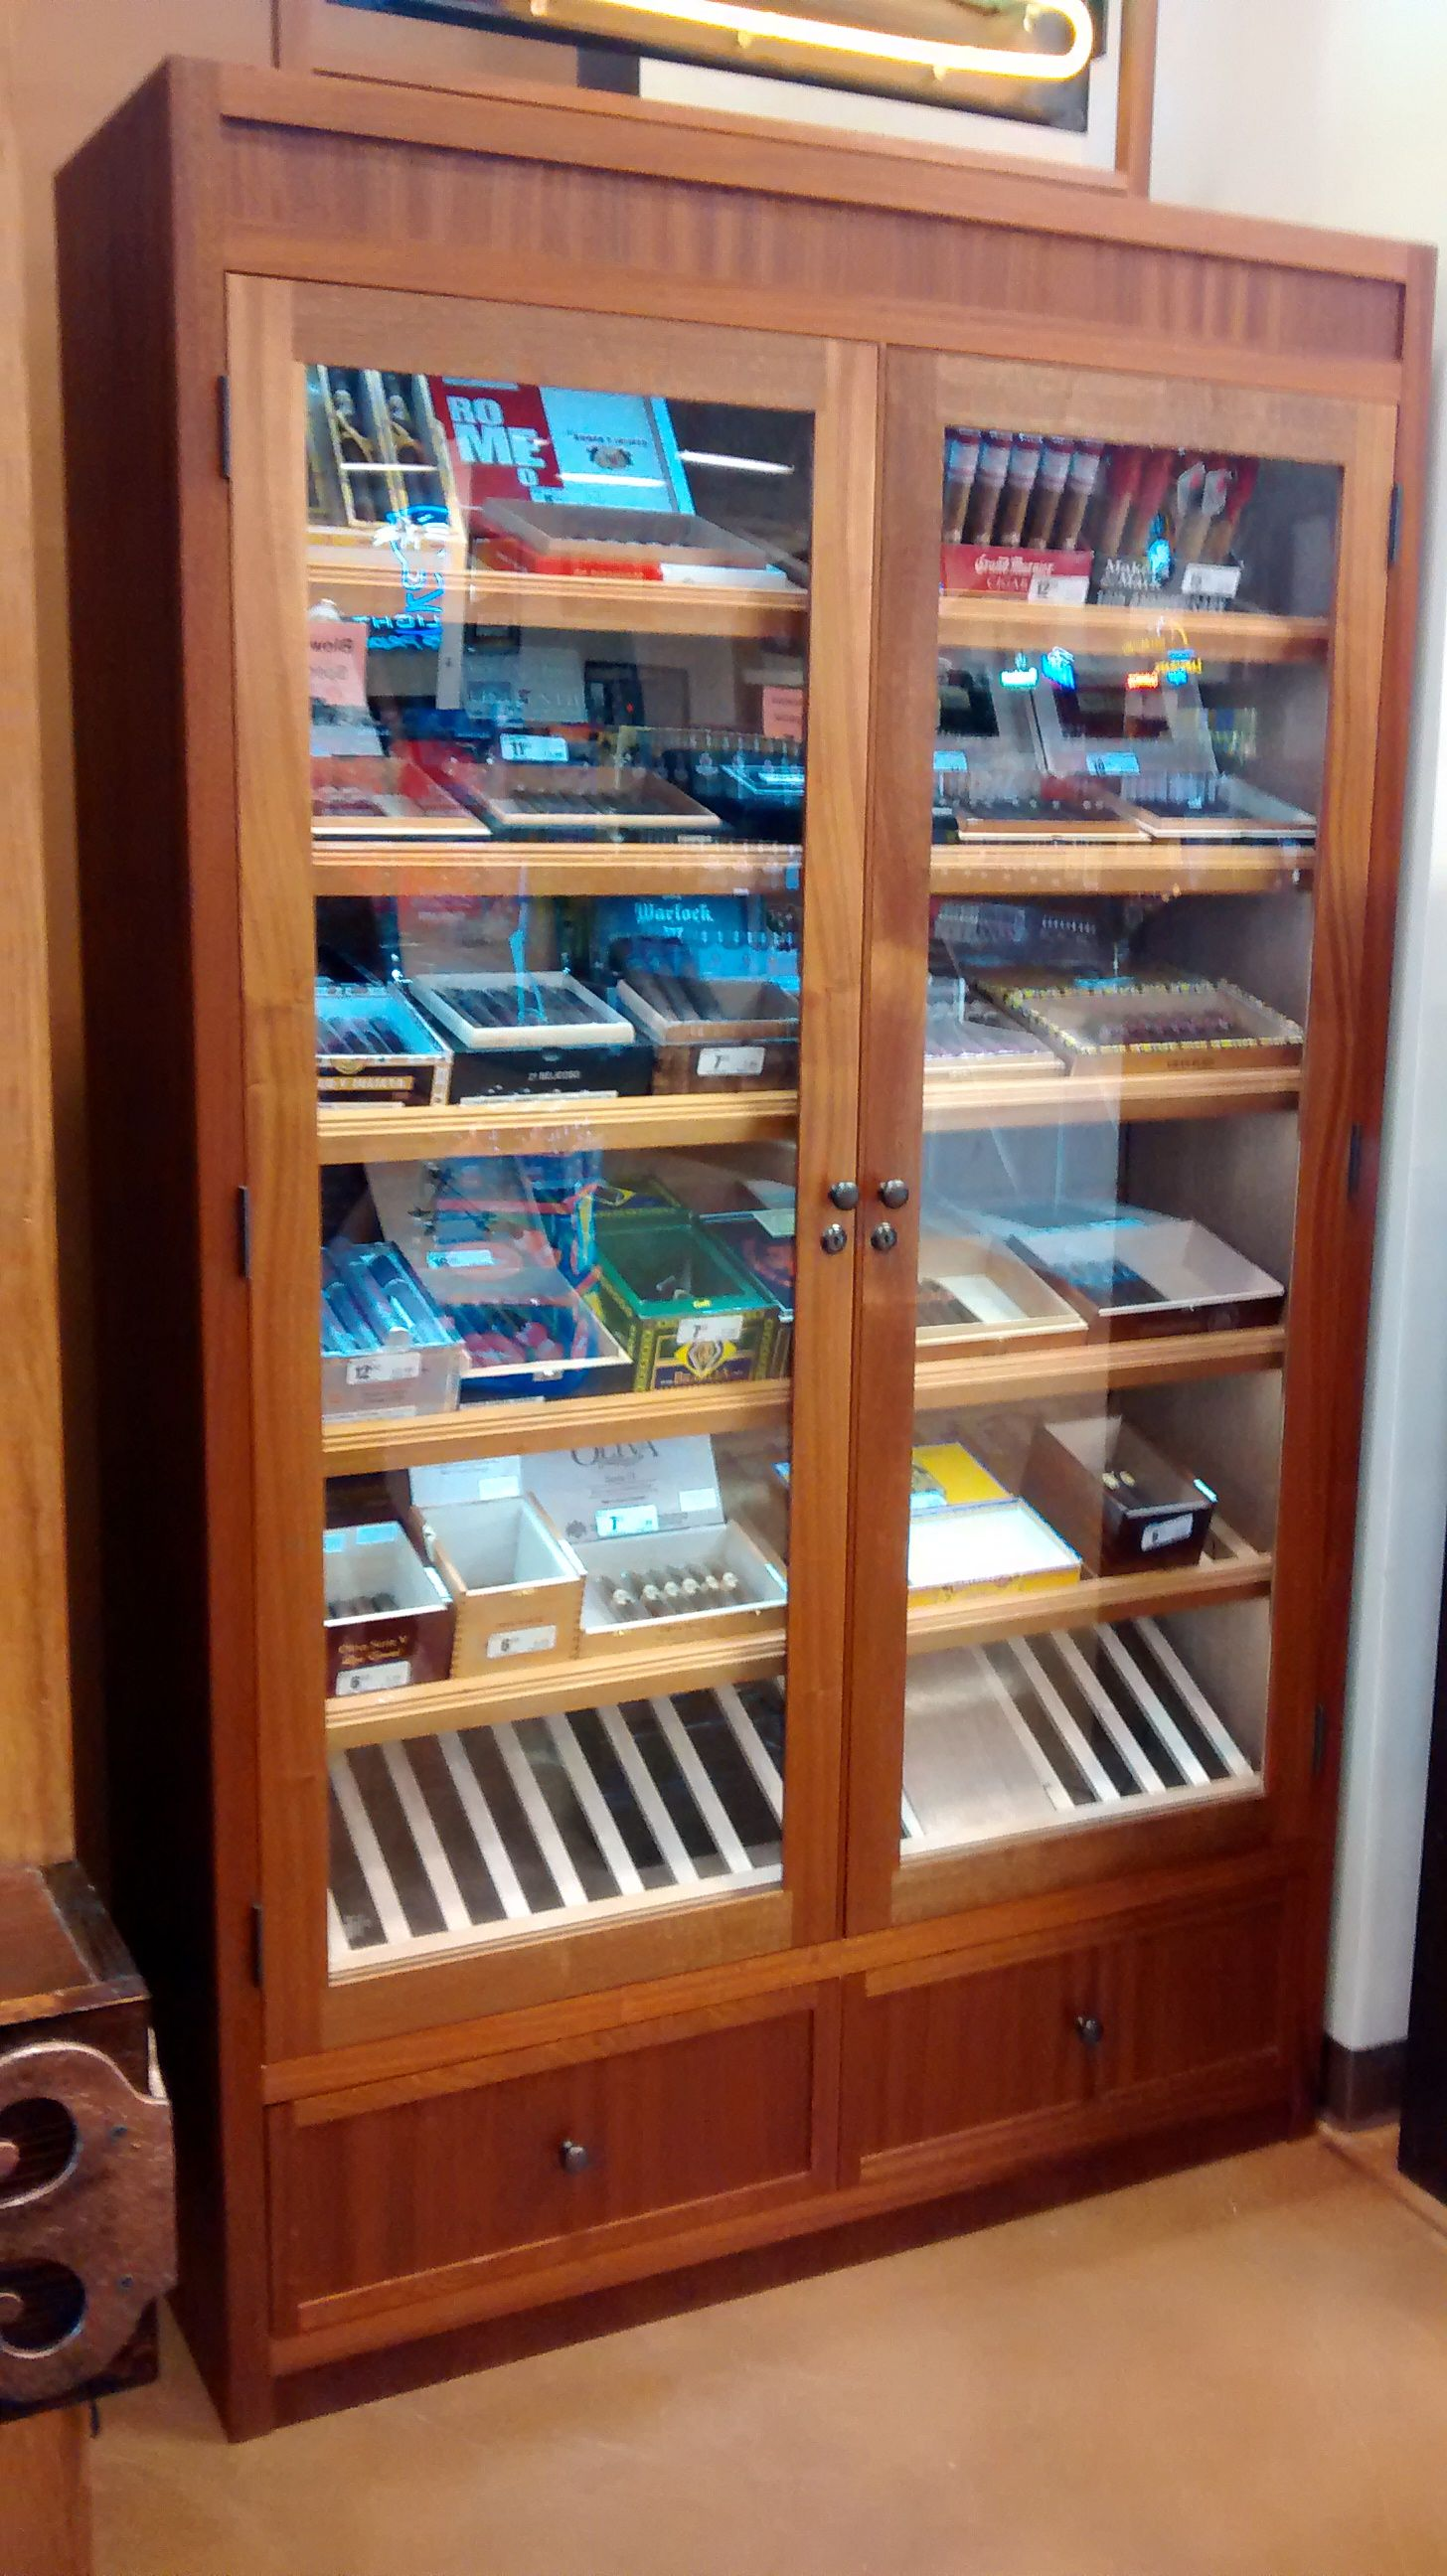 Knife Display Case Cabinet Storage